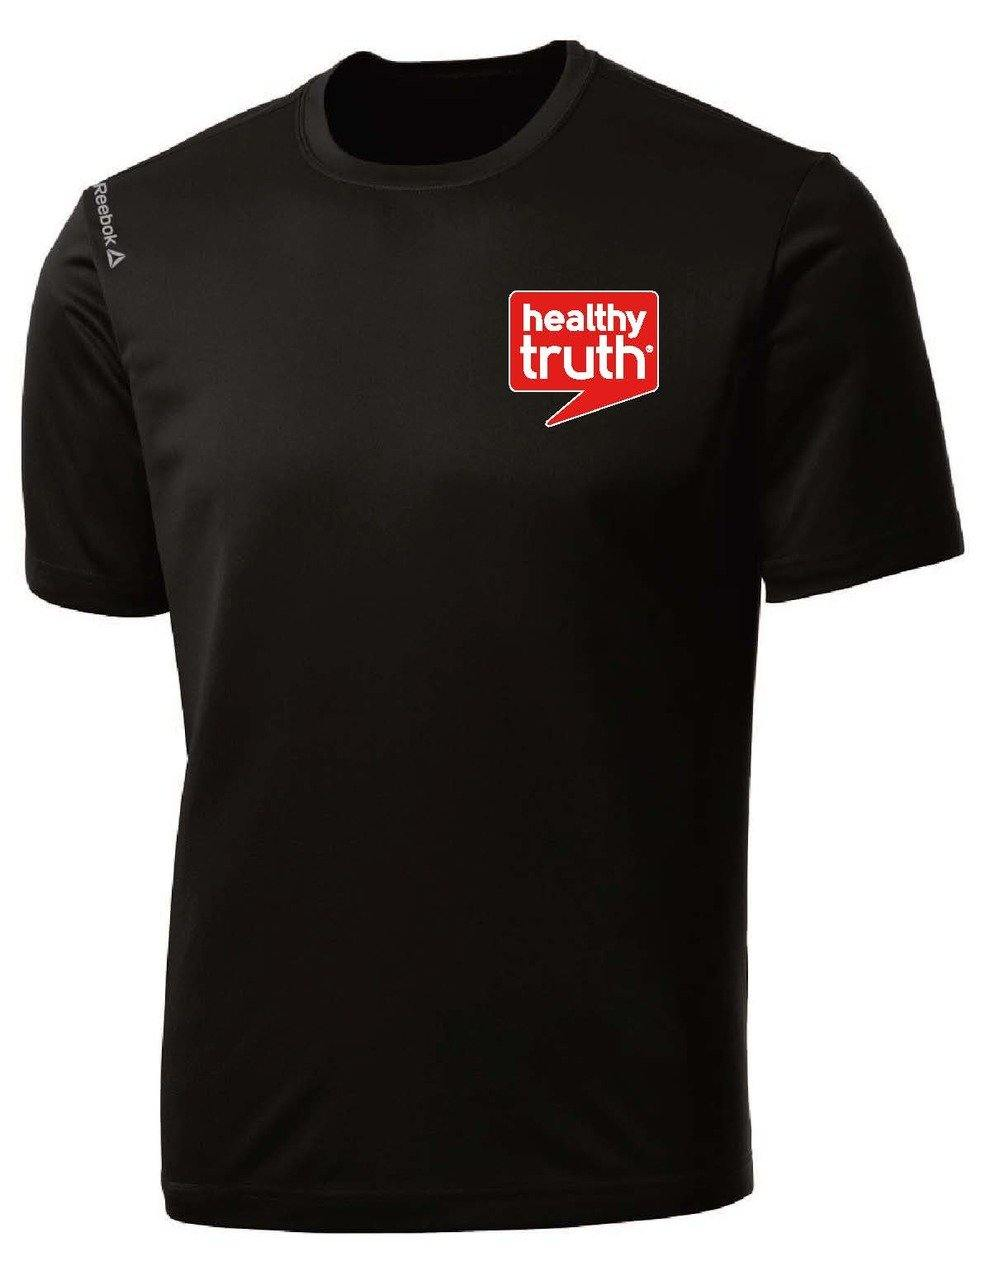 Healthy Truth T-shirt